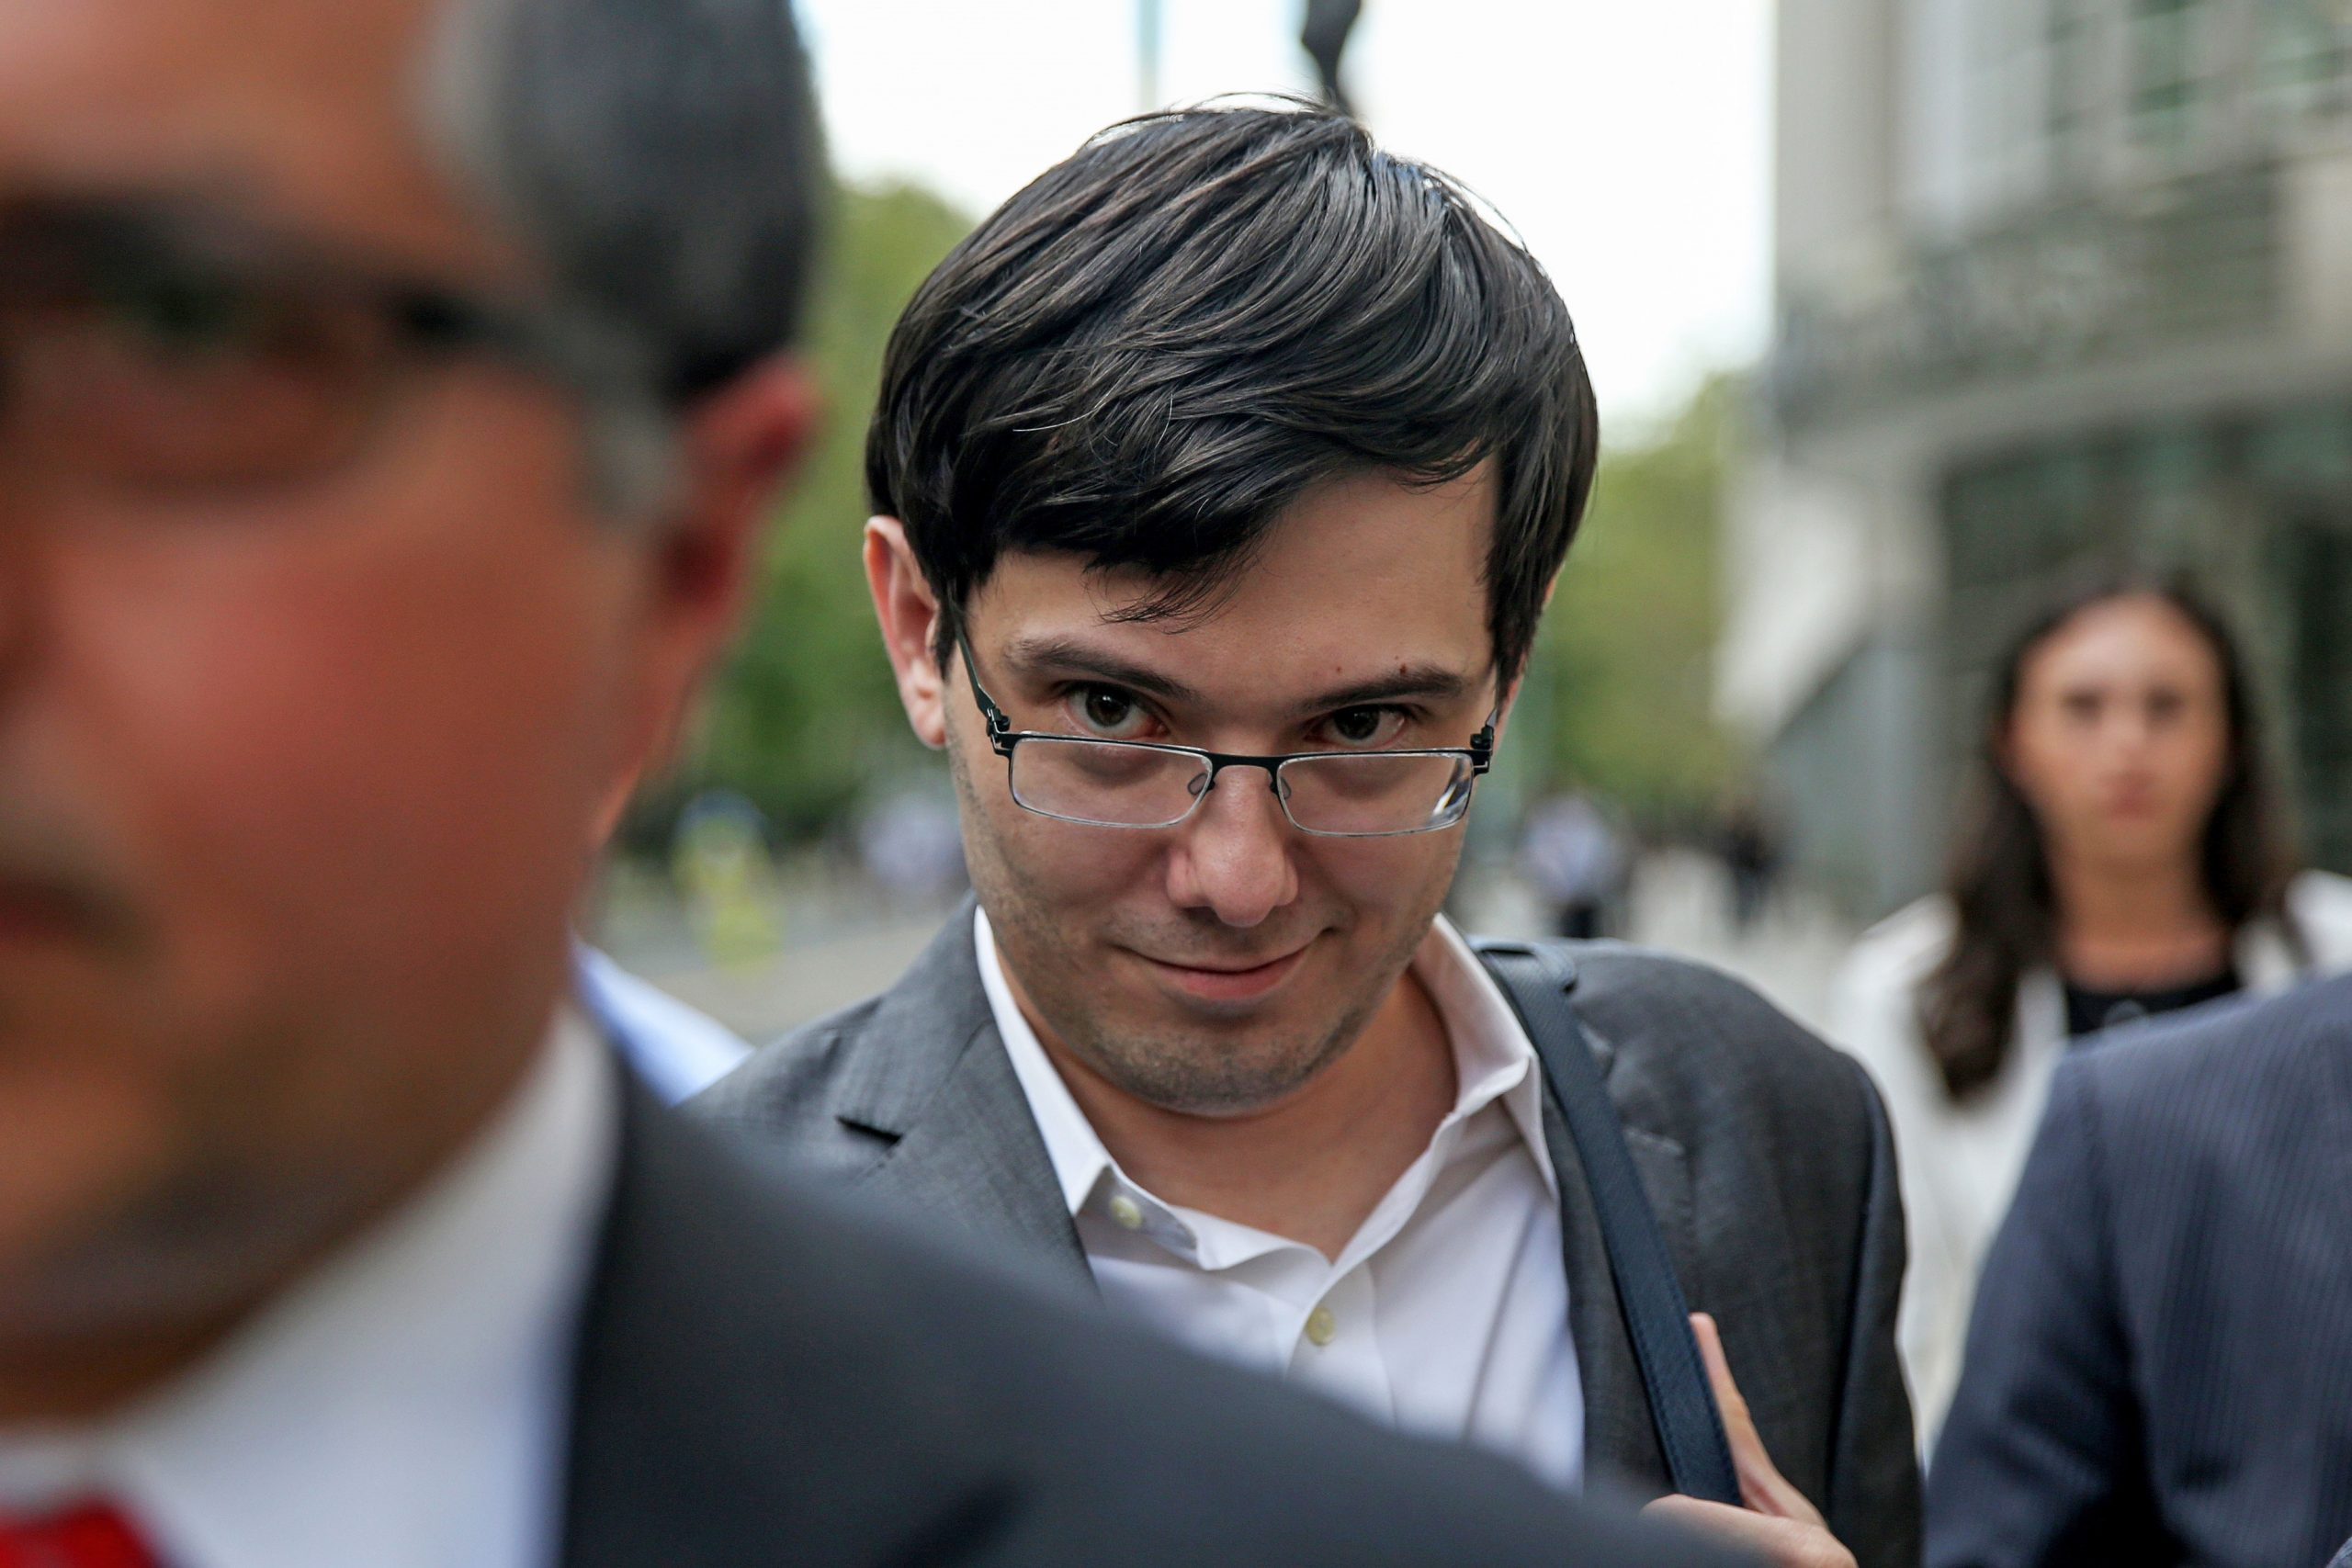 Netflix will make a movie about Martin Shkreli's rare Wu-Tang album purchase | DeviceDaily.com